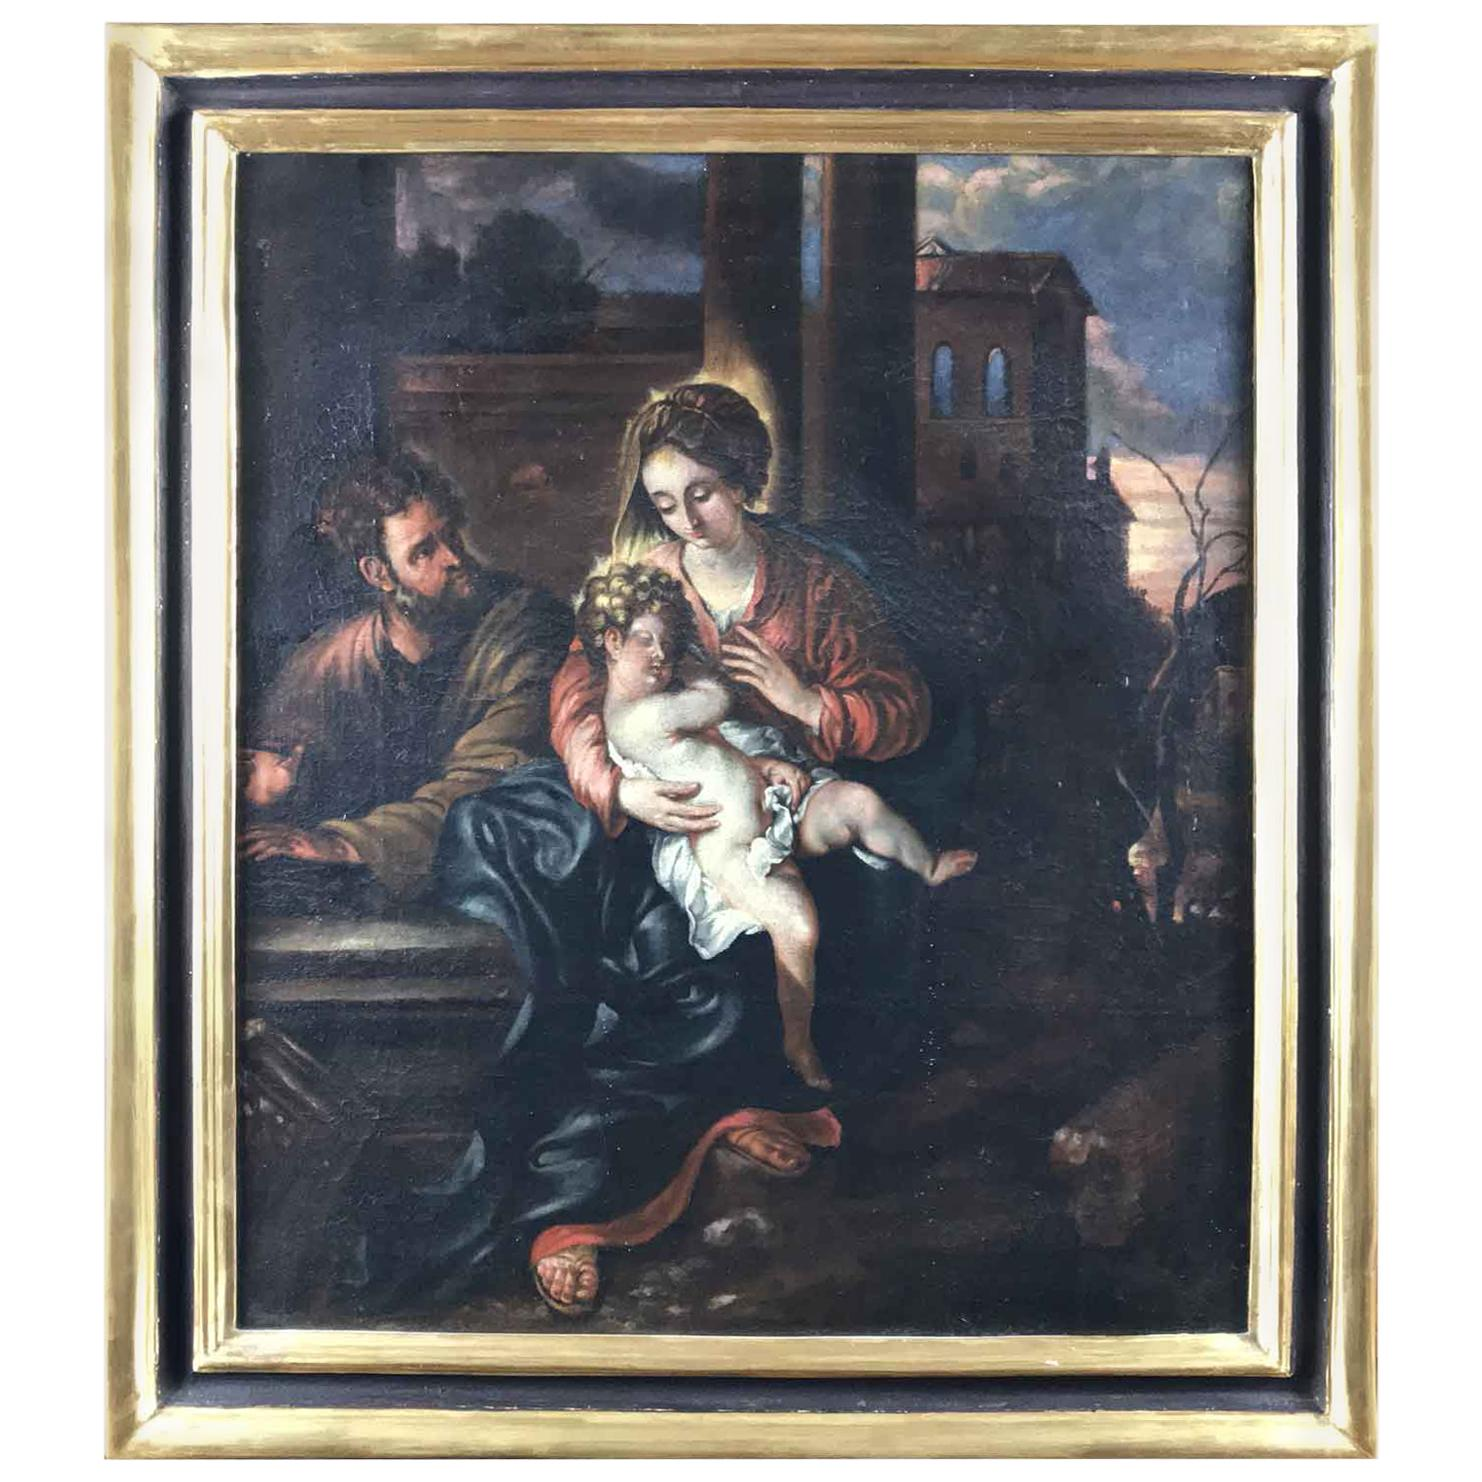 18th Century Italian Virgin Mary with Child after Baroque Genoese School